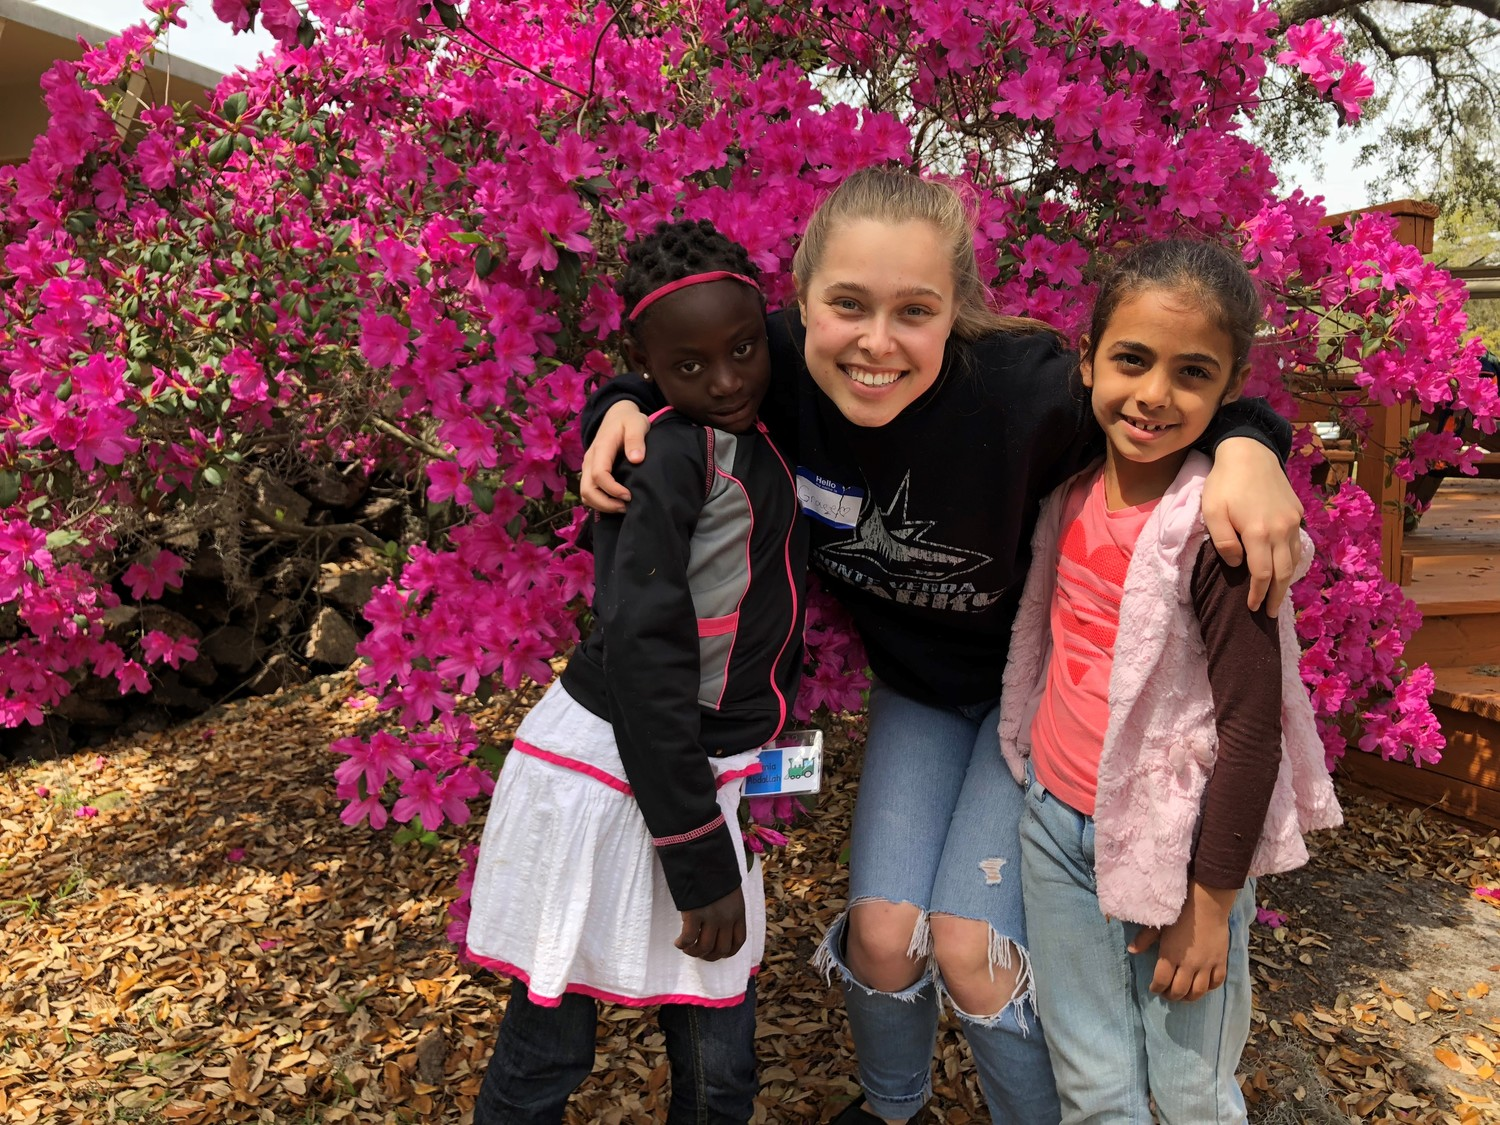 Grace Freedman poses with refugee students who are part of the JaxTHRIVE program.